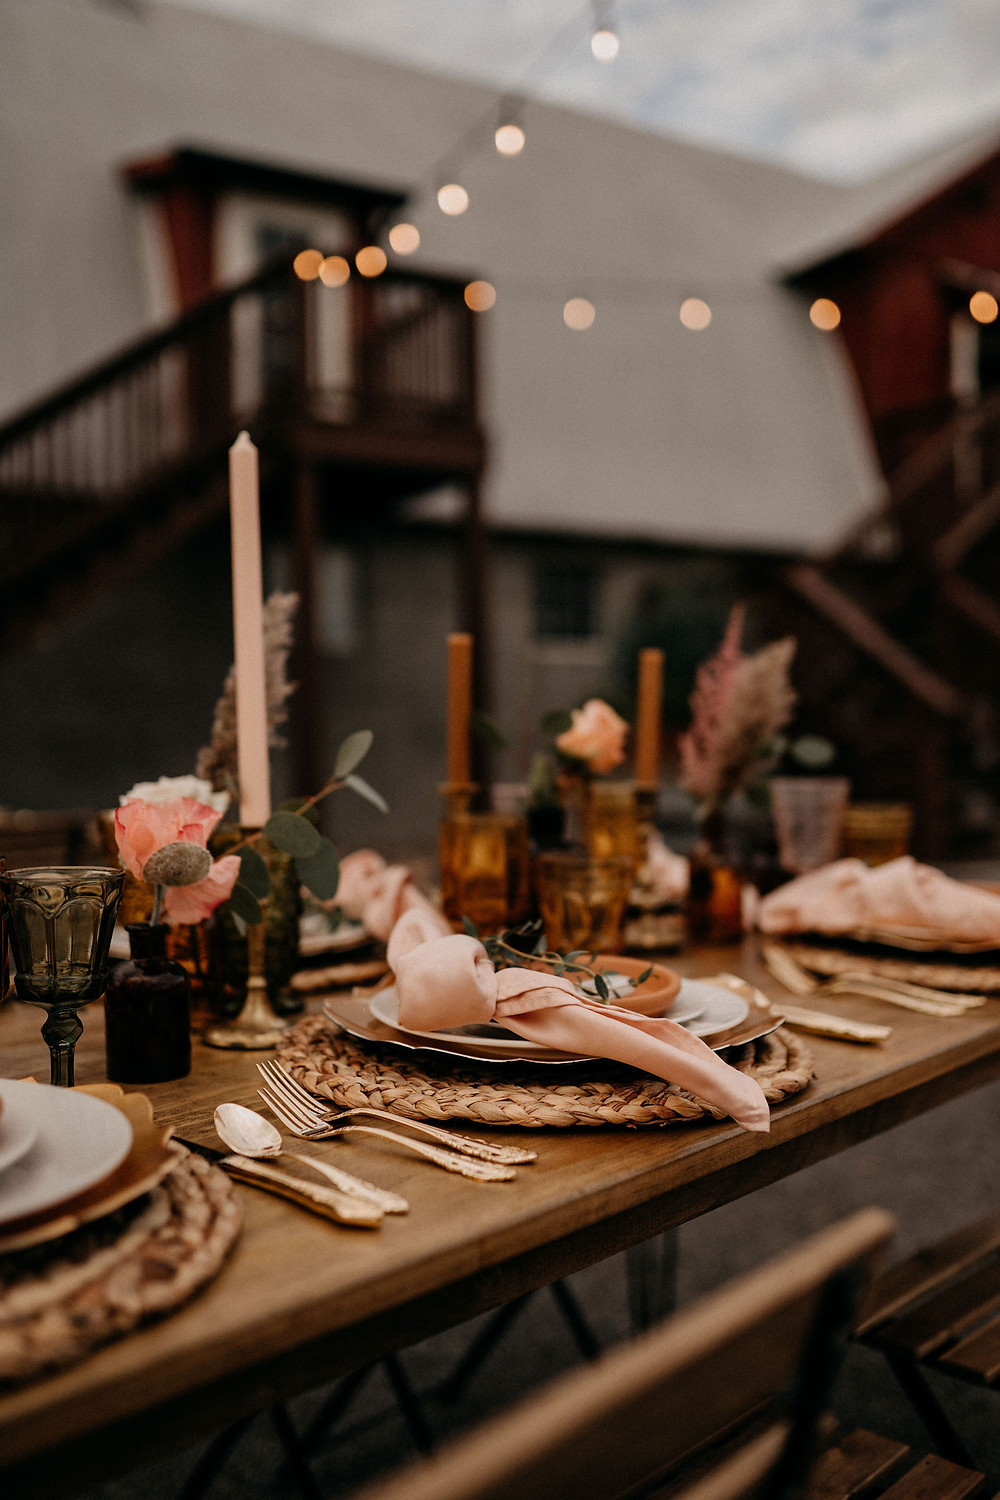 Outdoor Wedding Reception Decor: Warm & Rustic Styled Shoot at Hayloft in the Arch captured by Tracy Jade Photography featured on Pretty Little Vintage Co.